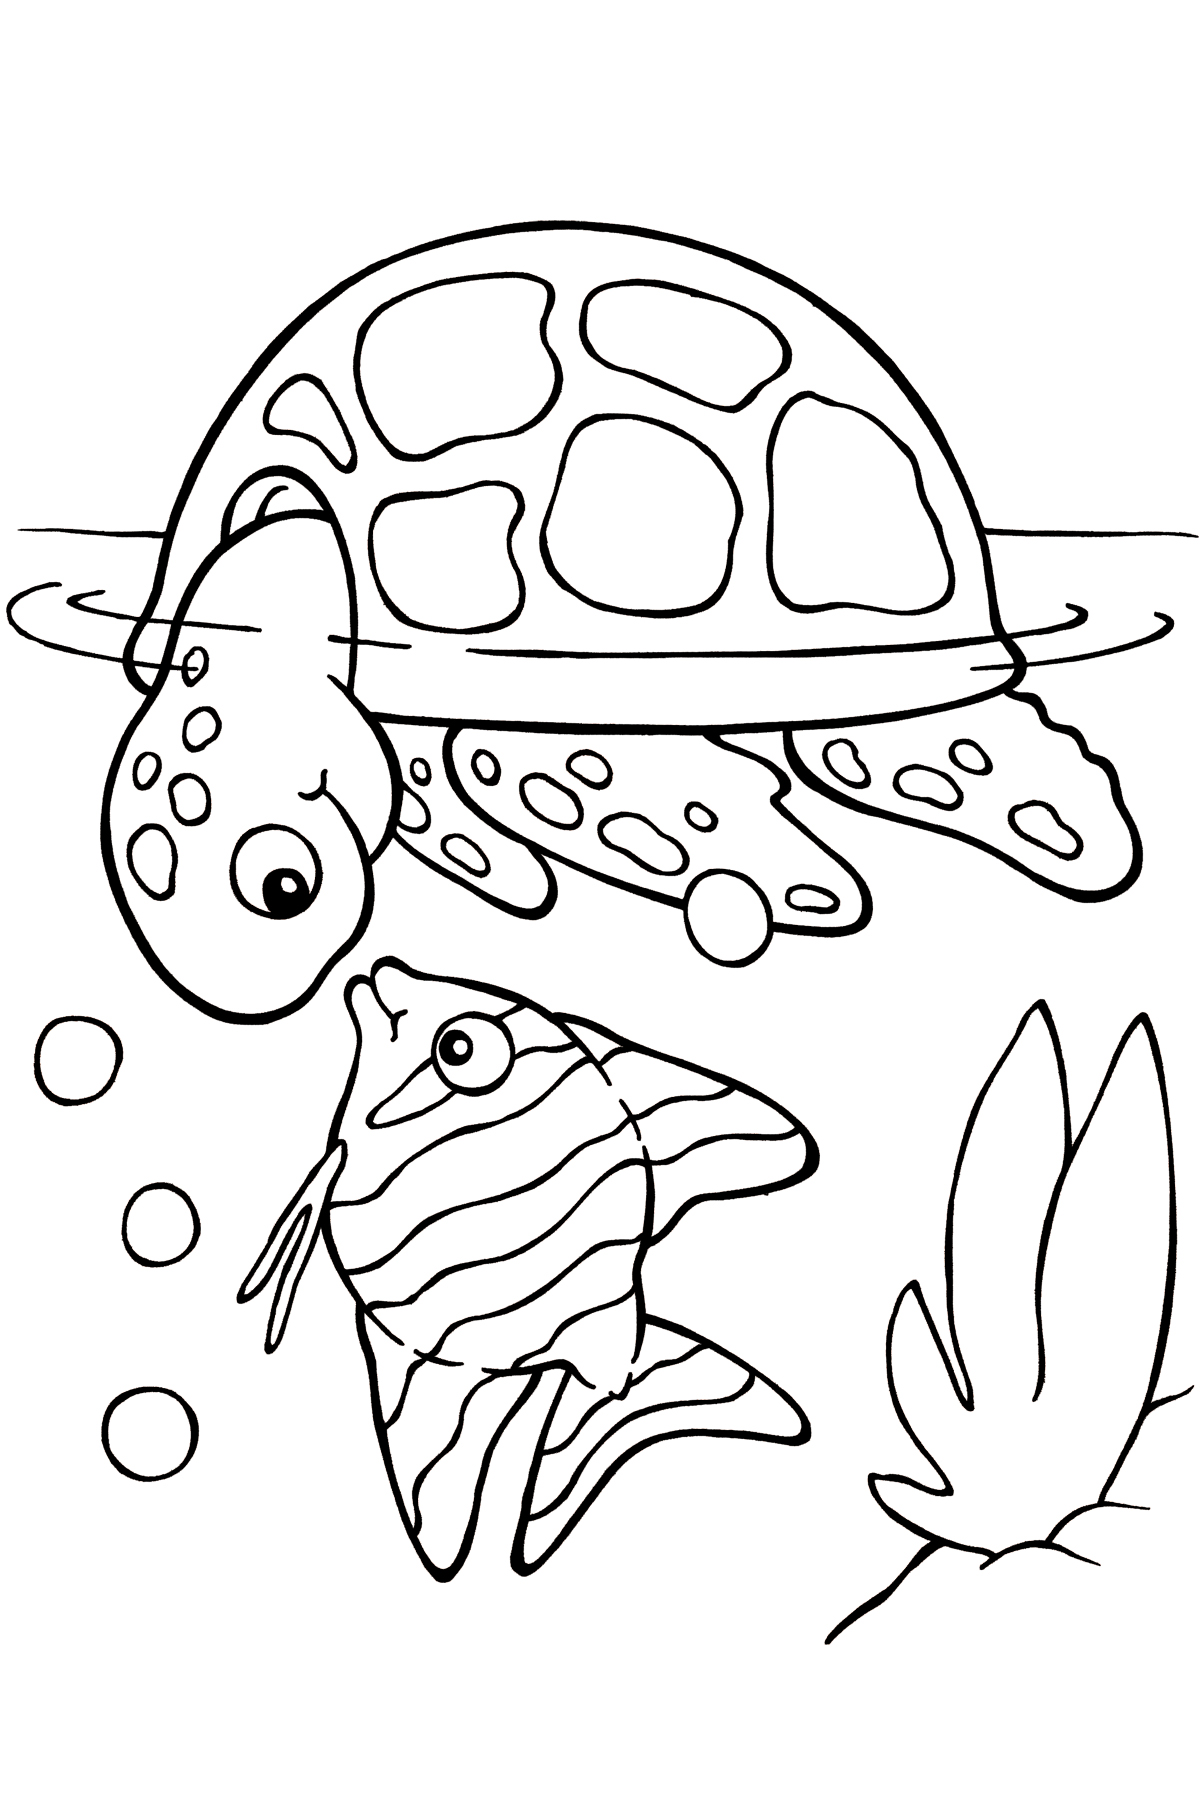 Sea turtle coloring pages to download and print for free for Free animal coloring pages kids